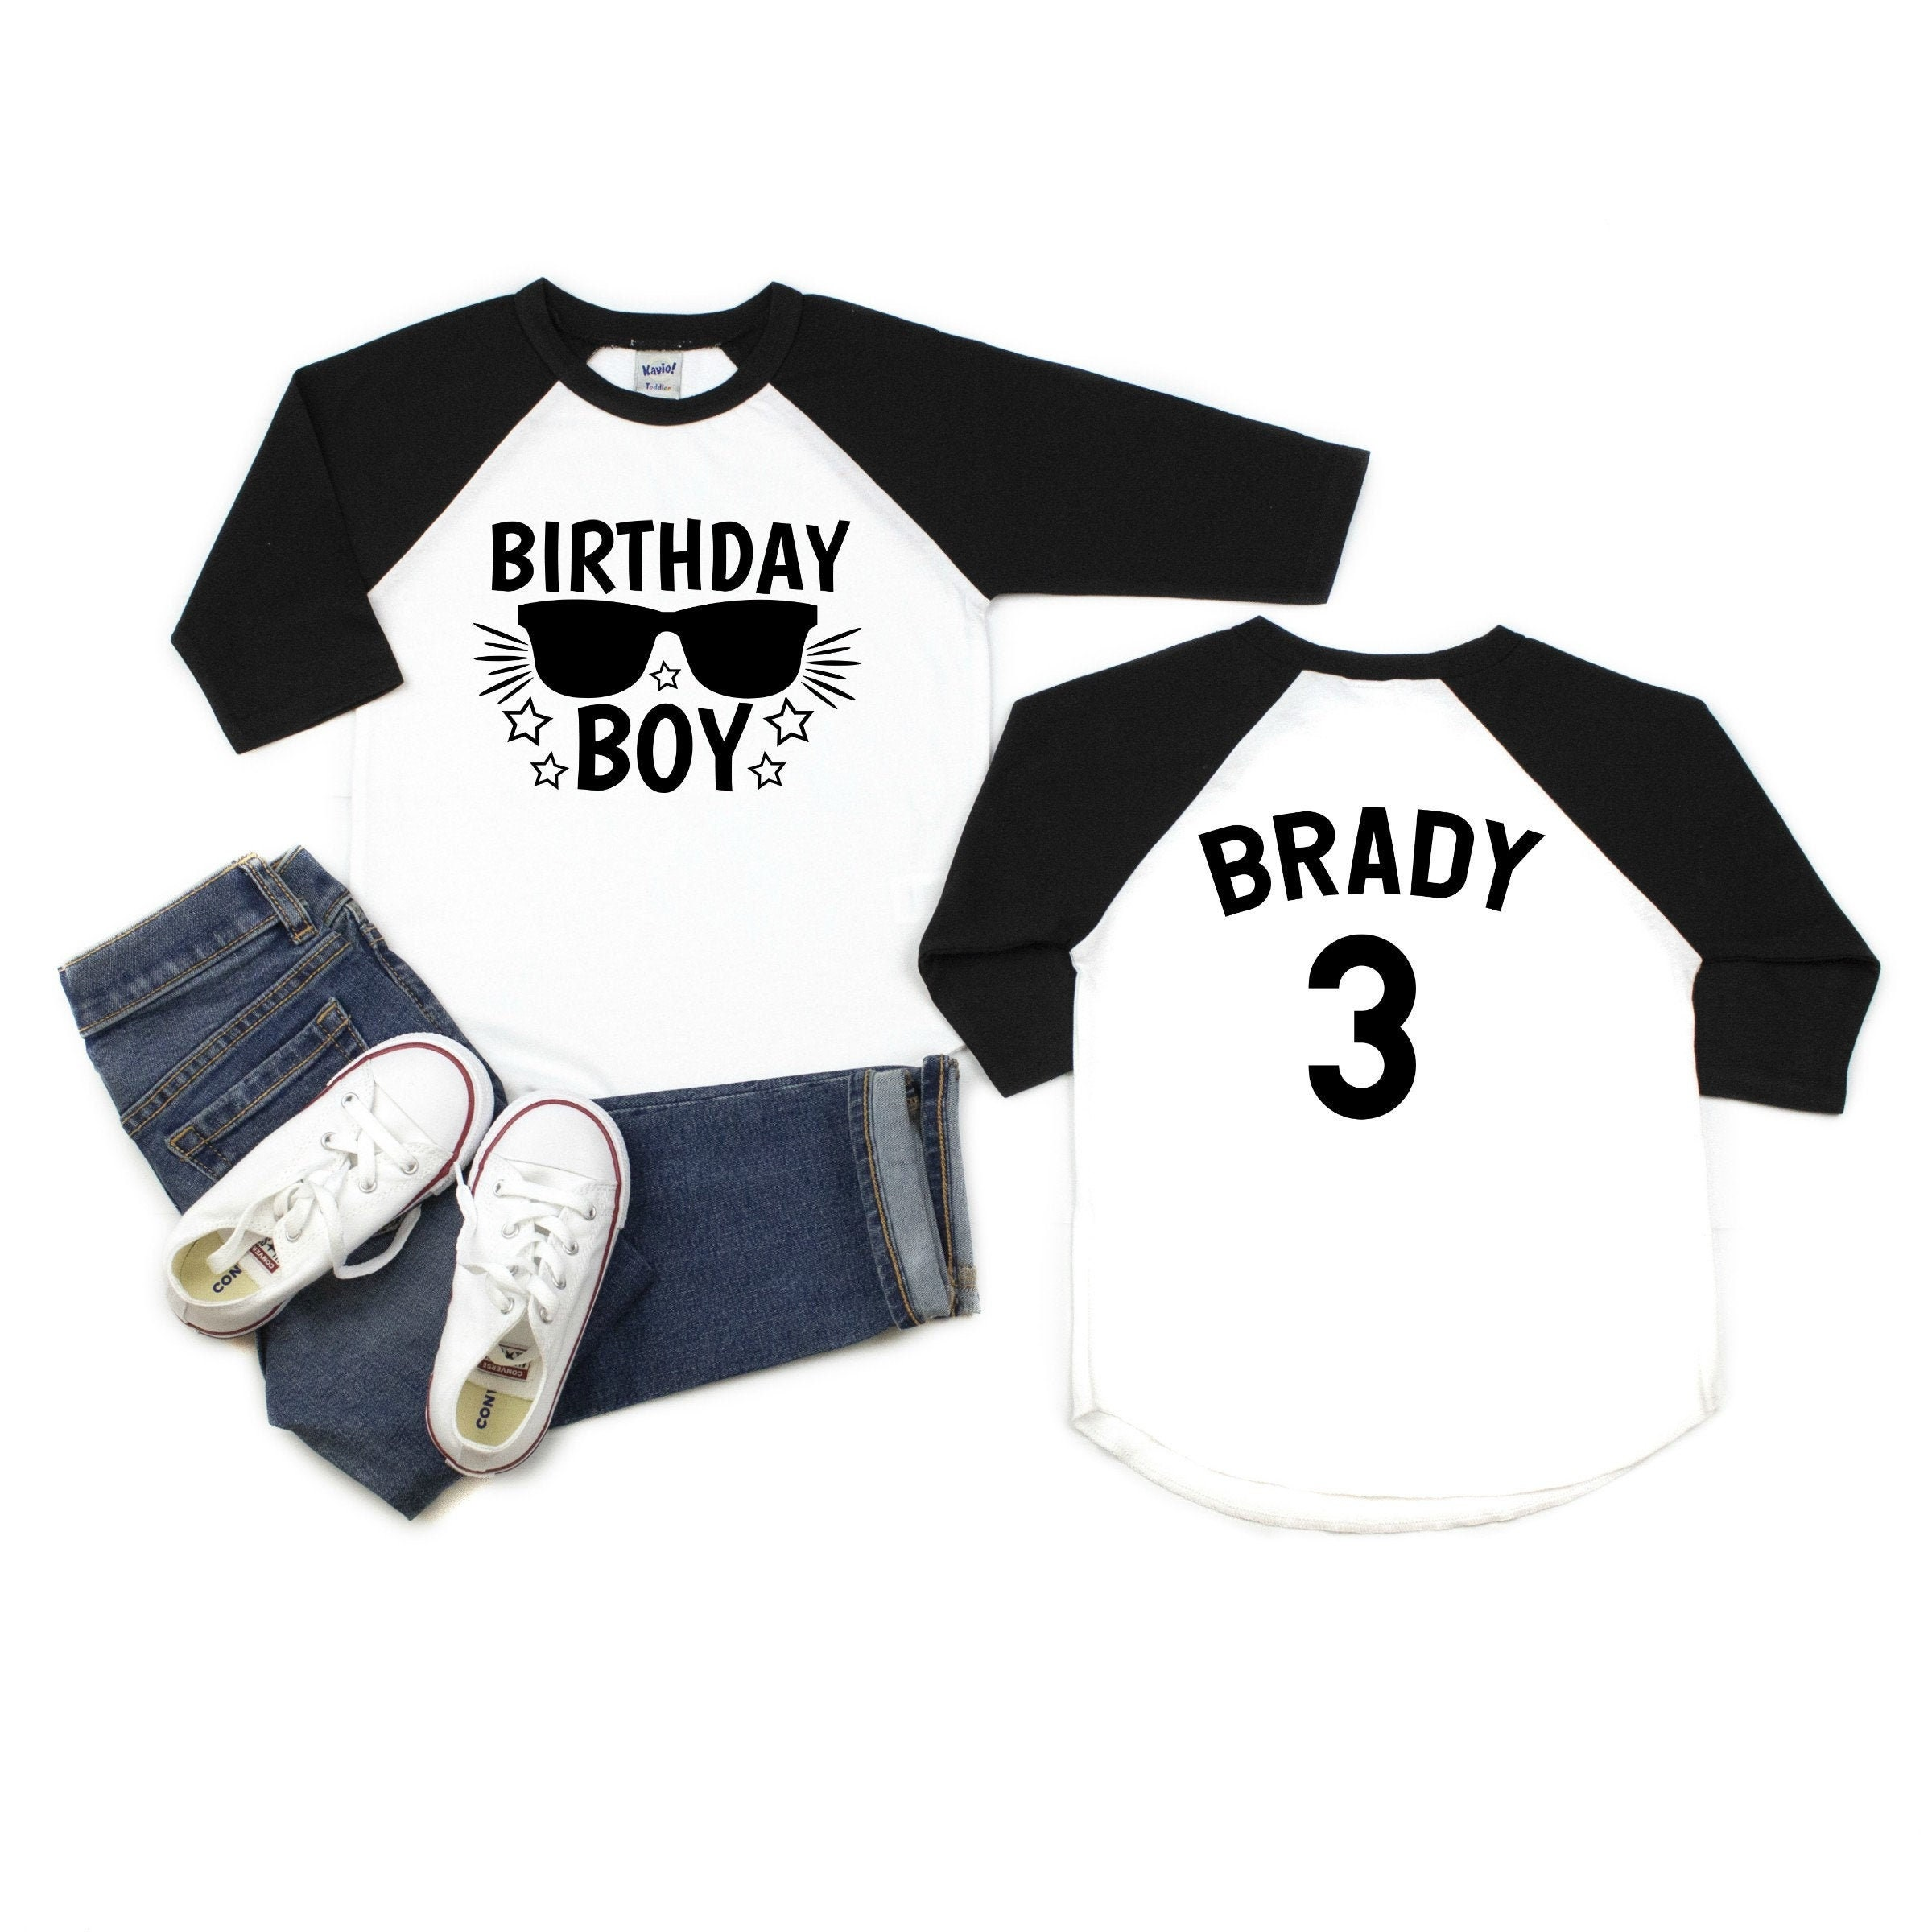 Any Age Birthday Shirt For Boys Baseball Style T-shirt With Birthday Boy And Sunglasses On The Front And Name And Age Printed On The Back Unisex Tshirt